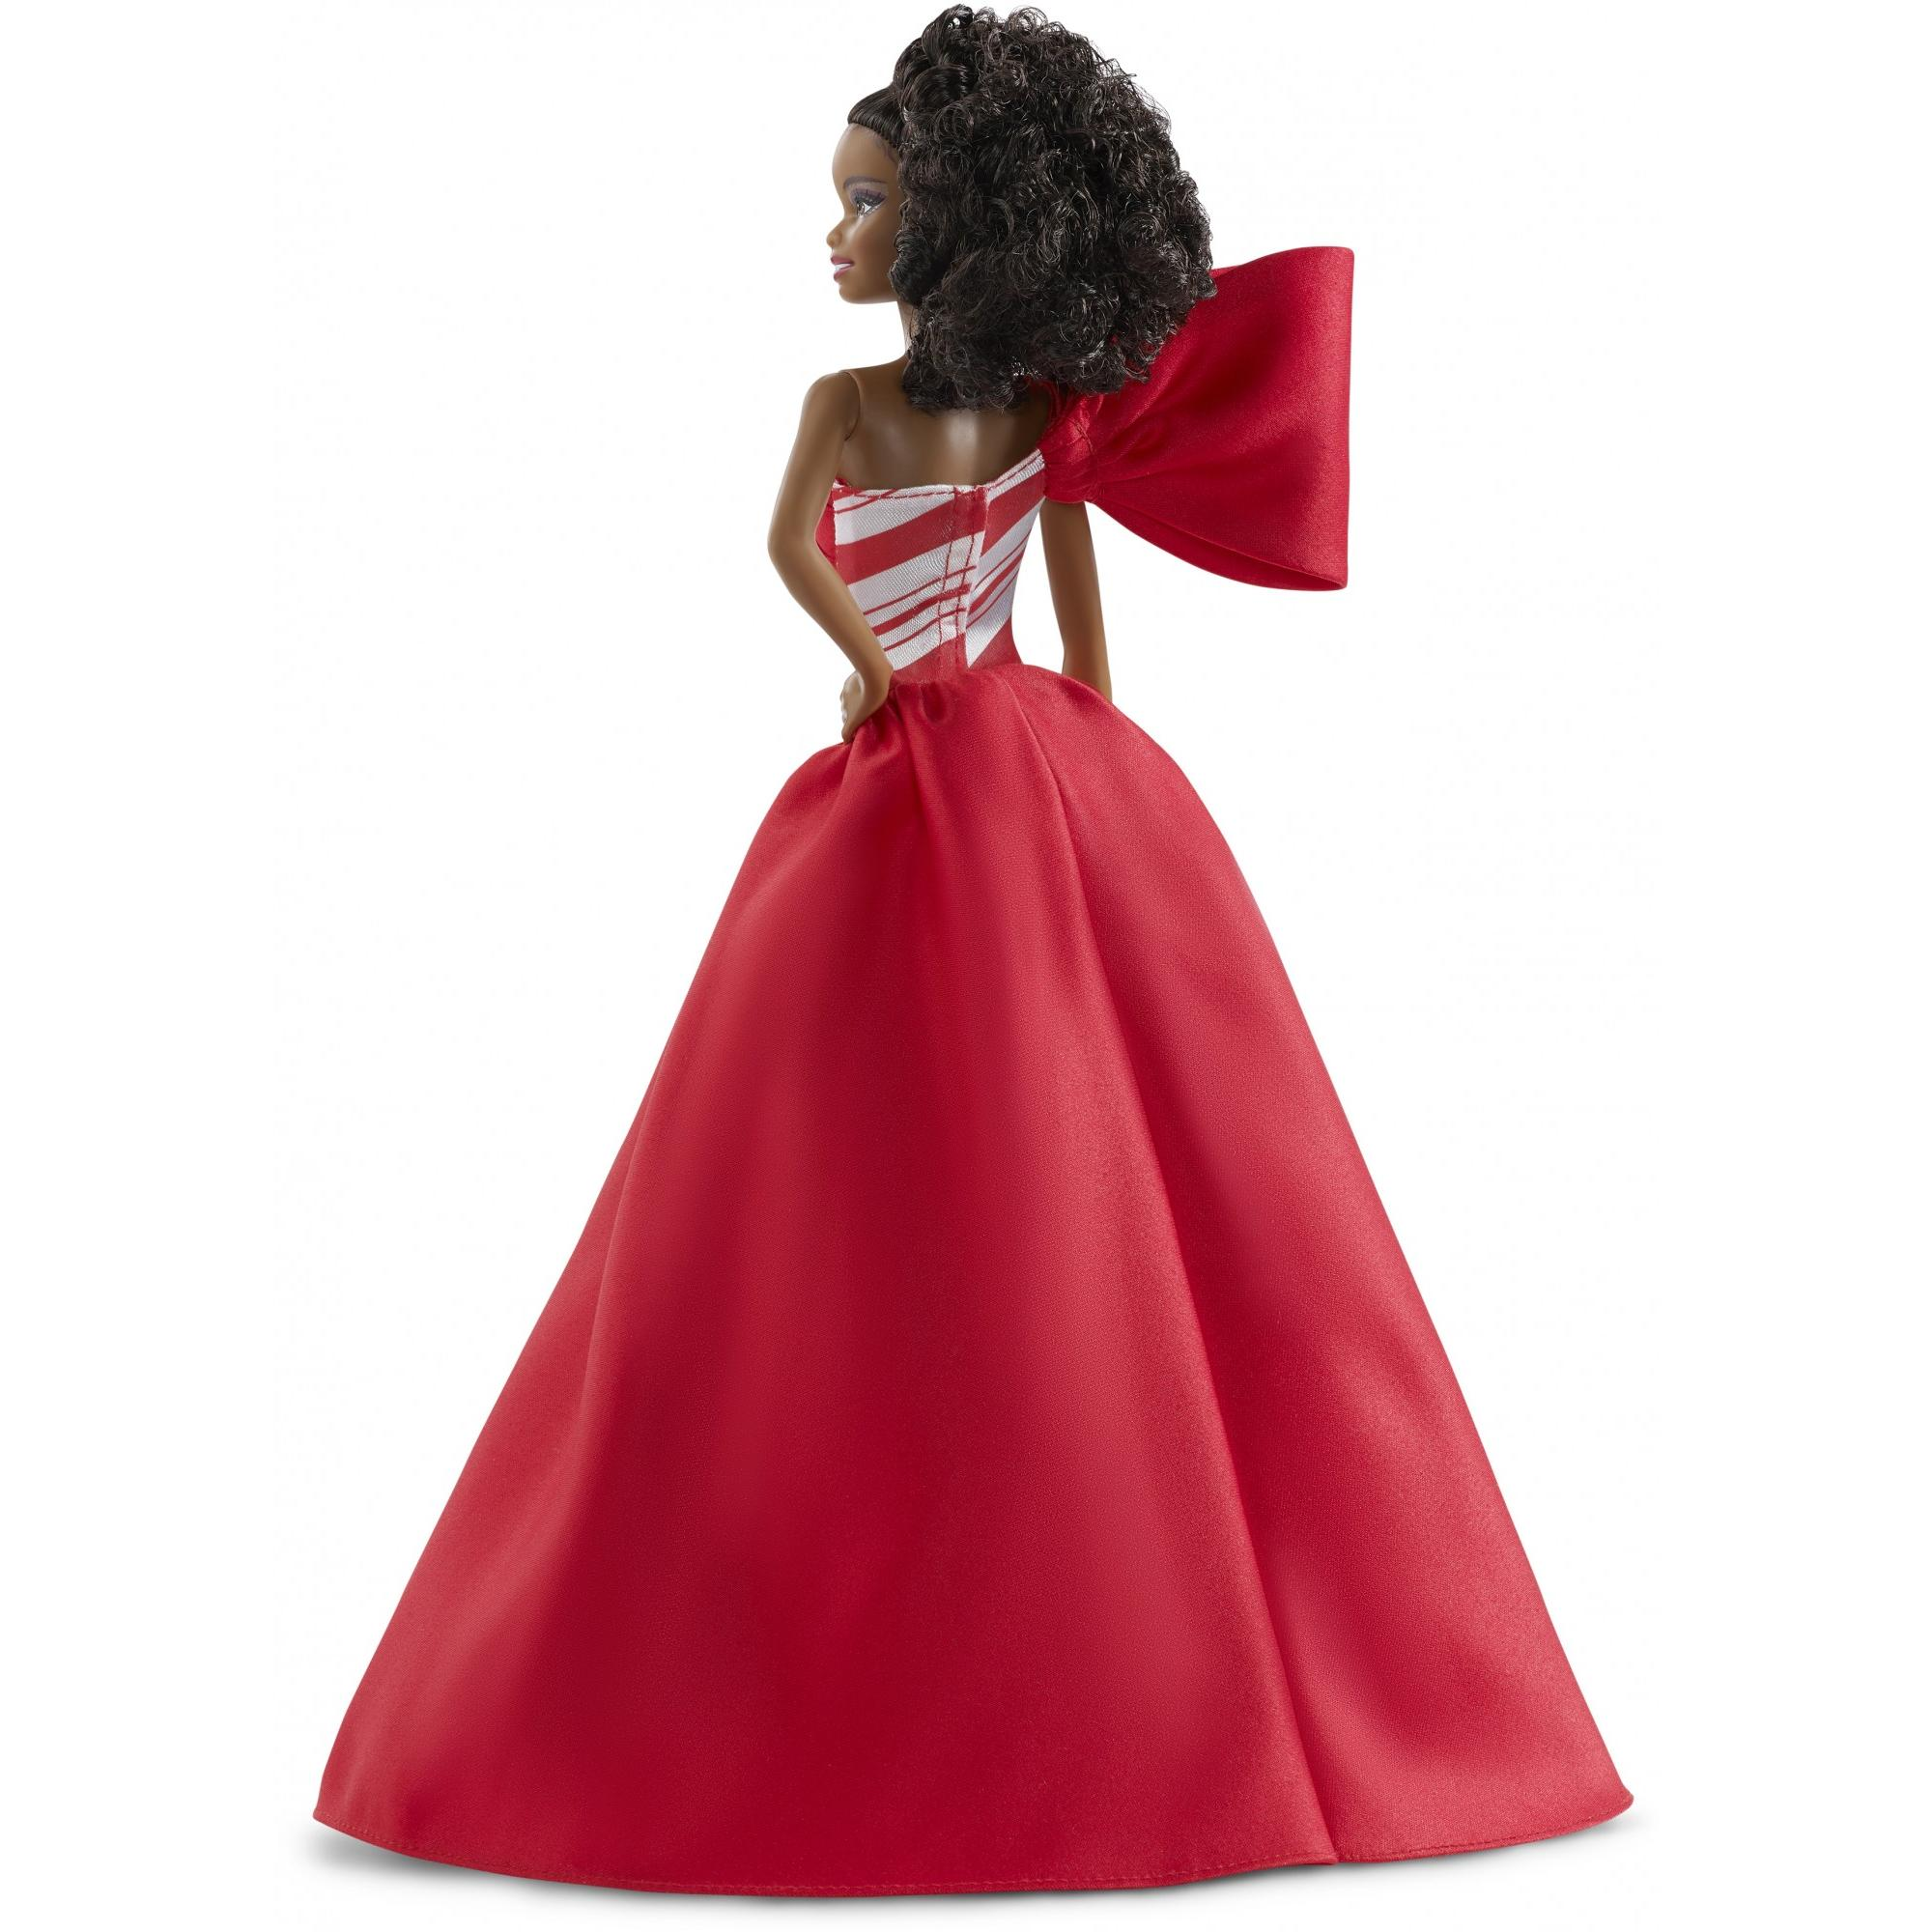 New AFRICAN AMERICAN Doll 2019 HOLIDAY BARBIE In Hand SIGNATURE